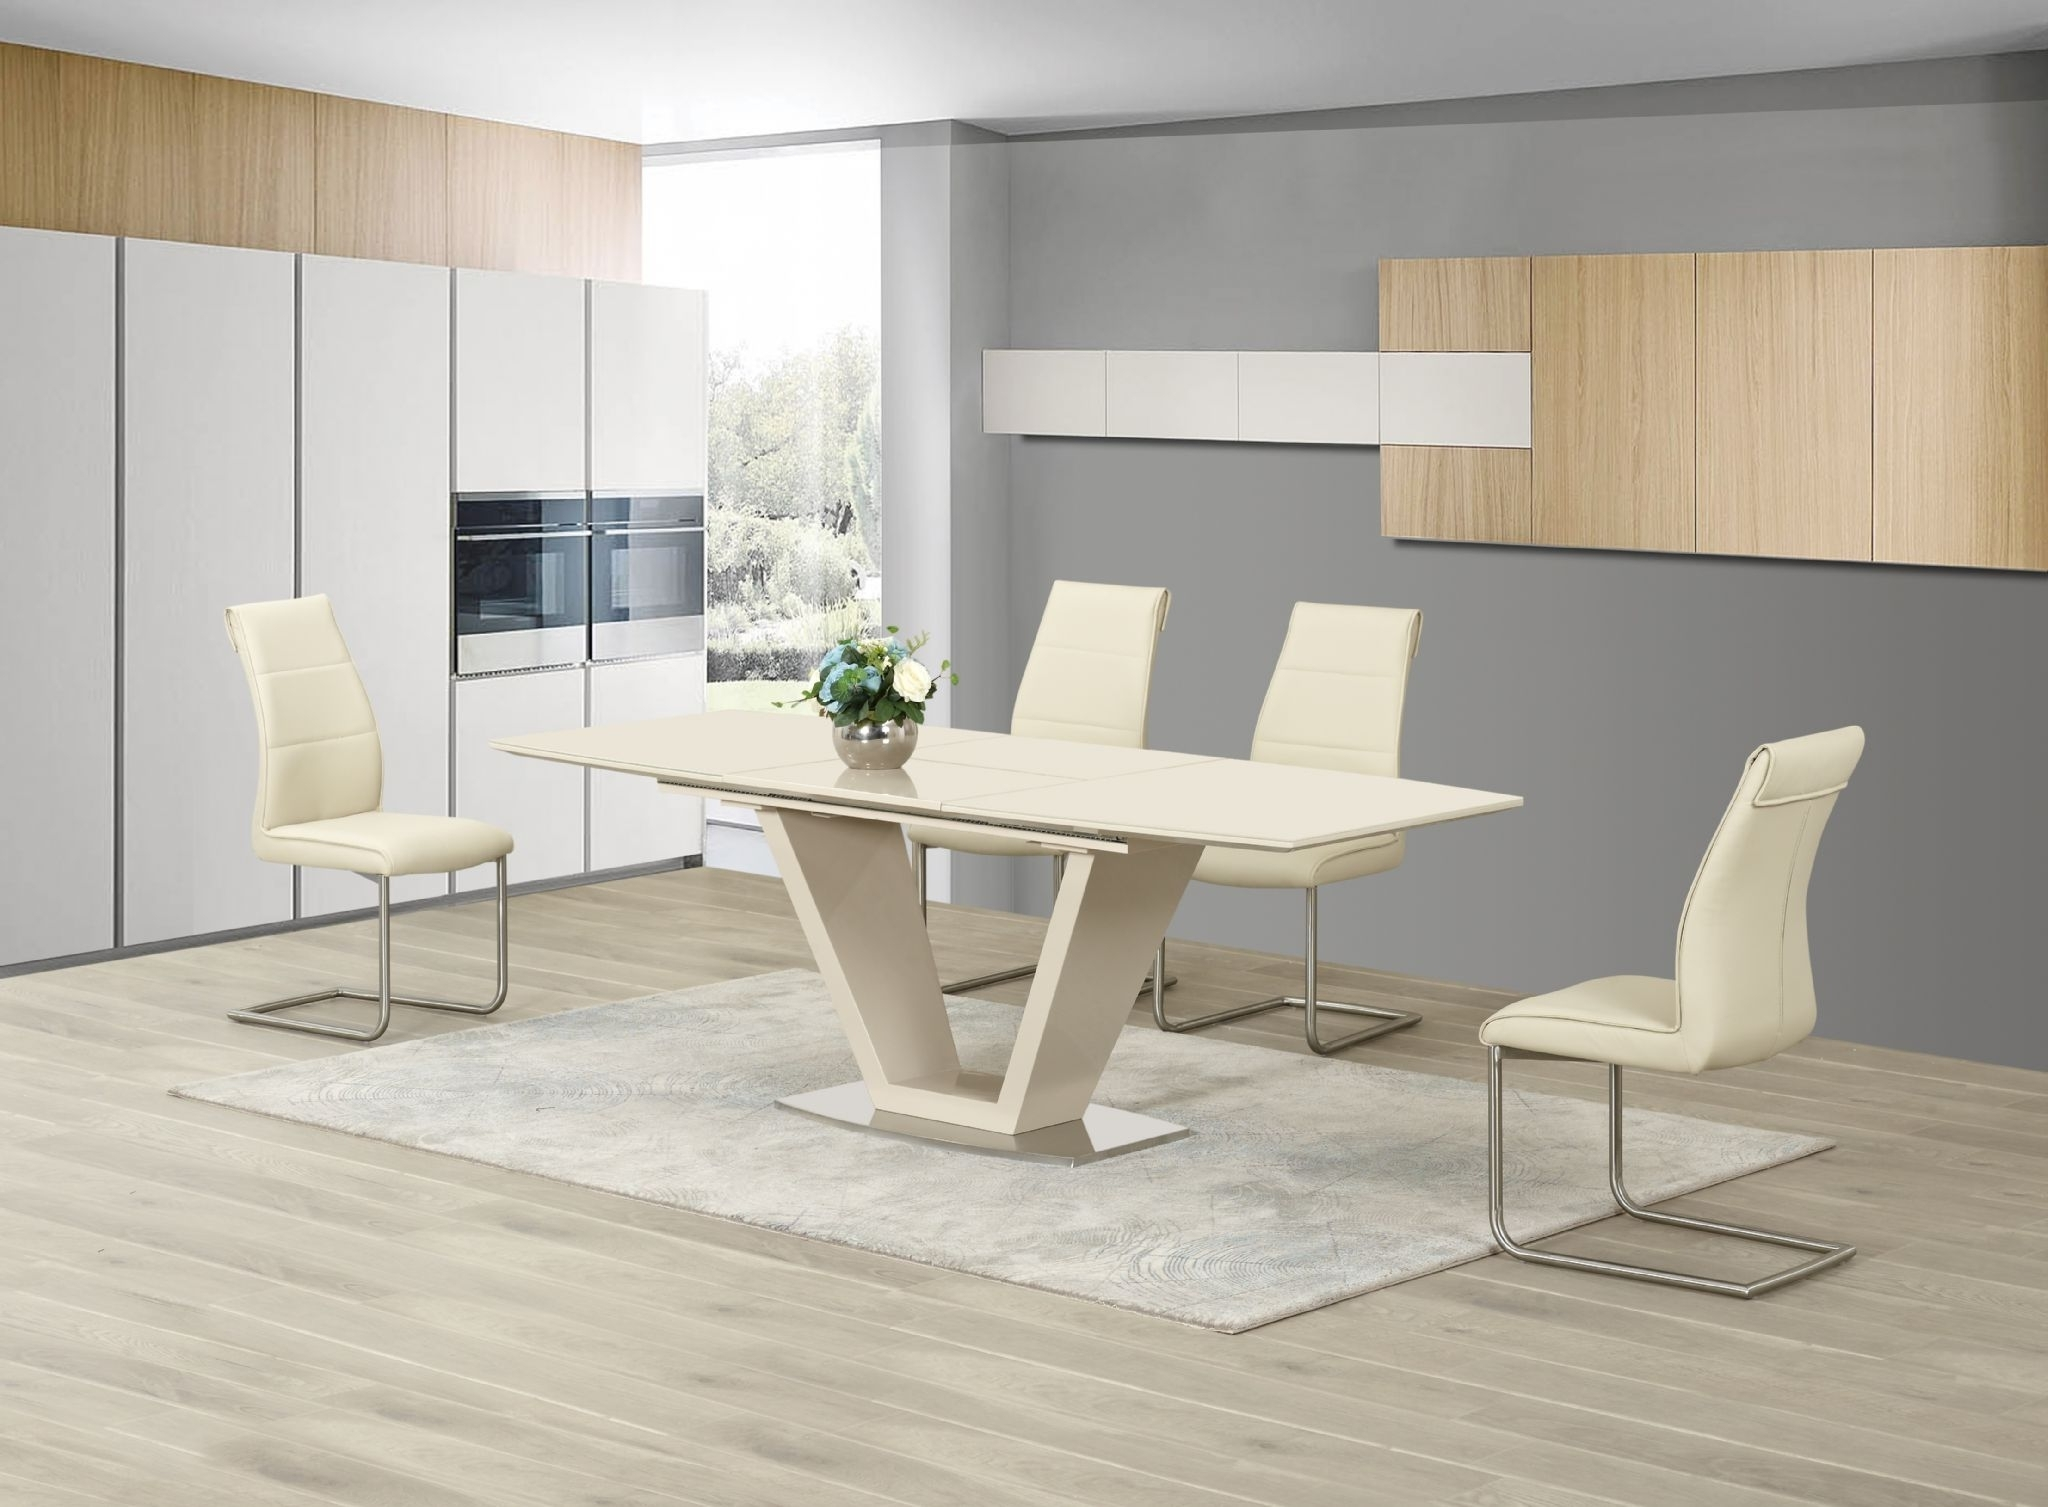 Best And Newest Ga Loriga Cream Gloss Glass Designer Dining Table Extending 160 220 With Regard To Extending Dining Table And Chairs (View 4 of 25)